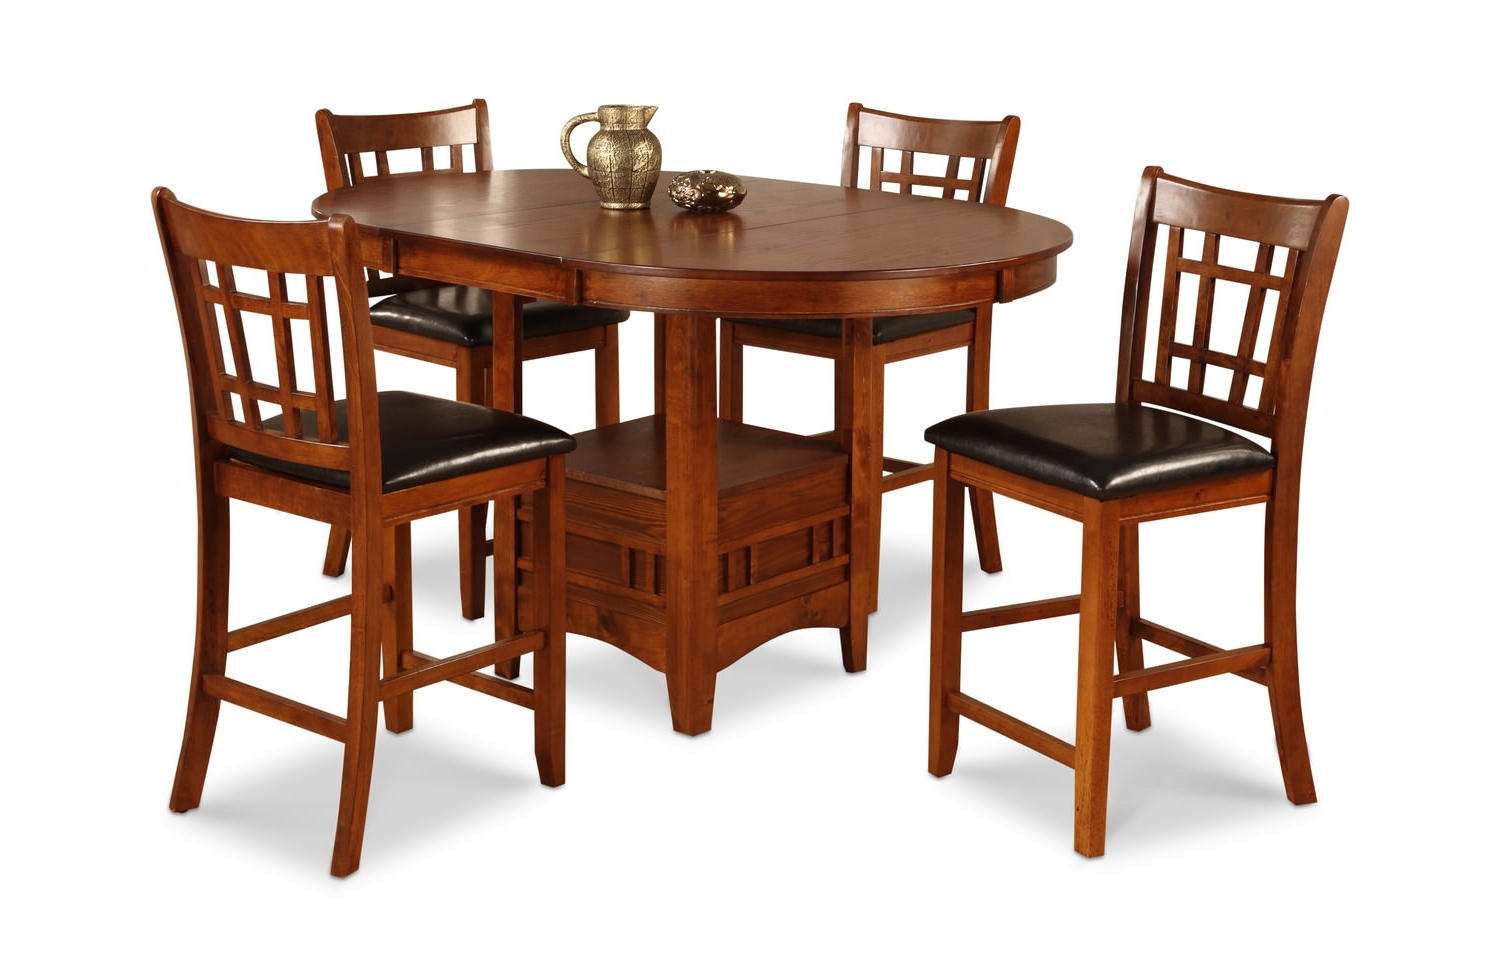 Dining Sets – Kitchen & Dining Room Sets – Hom Furniture Throughout Latest Chapleau Ii 9 Piece Extension Dining Tables With Side Chairs (View 16 of 25)